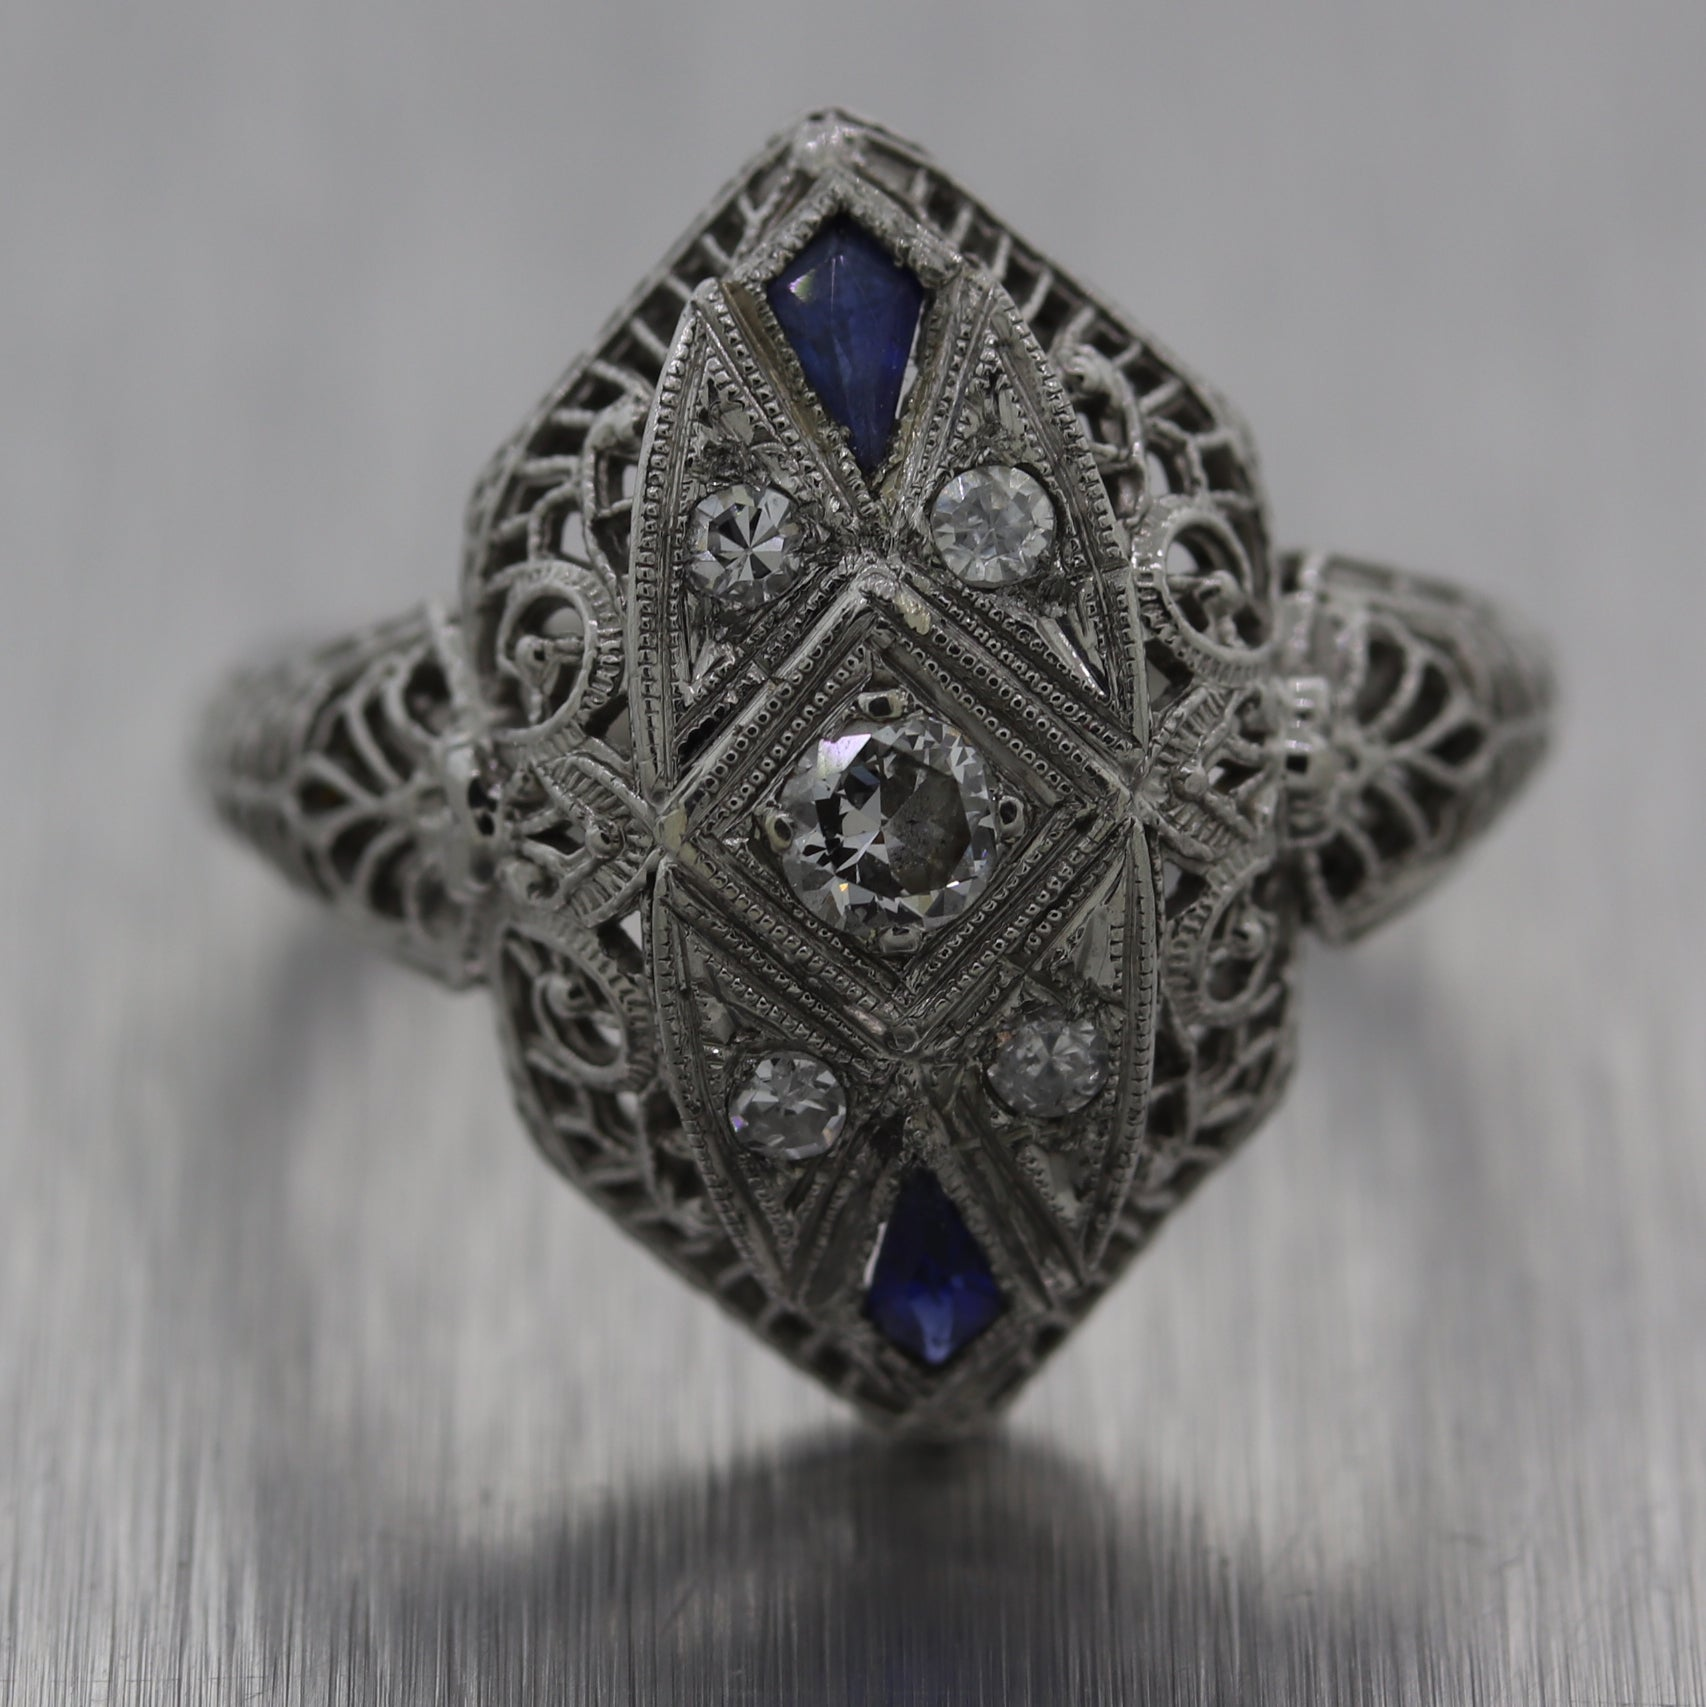 1920's Antique Art Deco Platinum & 18k White Gold 0.20ctw Diamond Filigree Ring